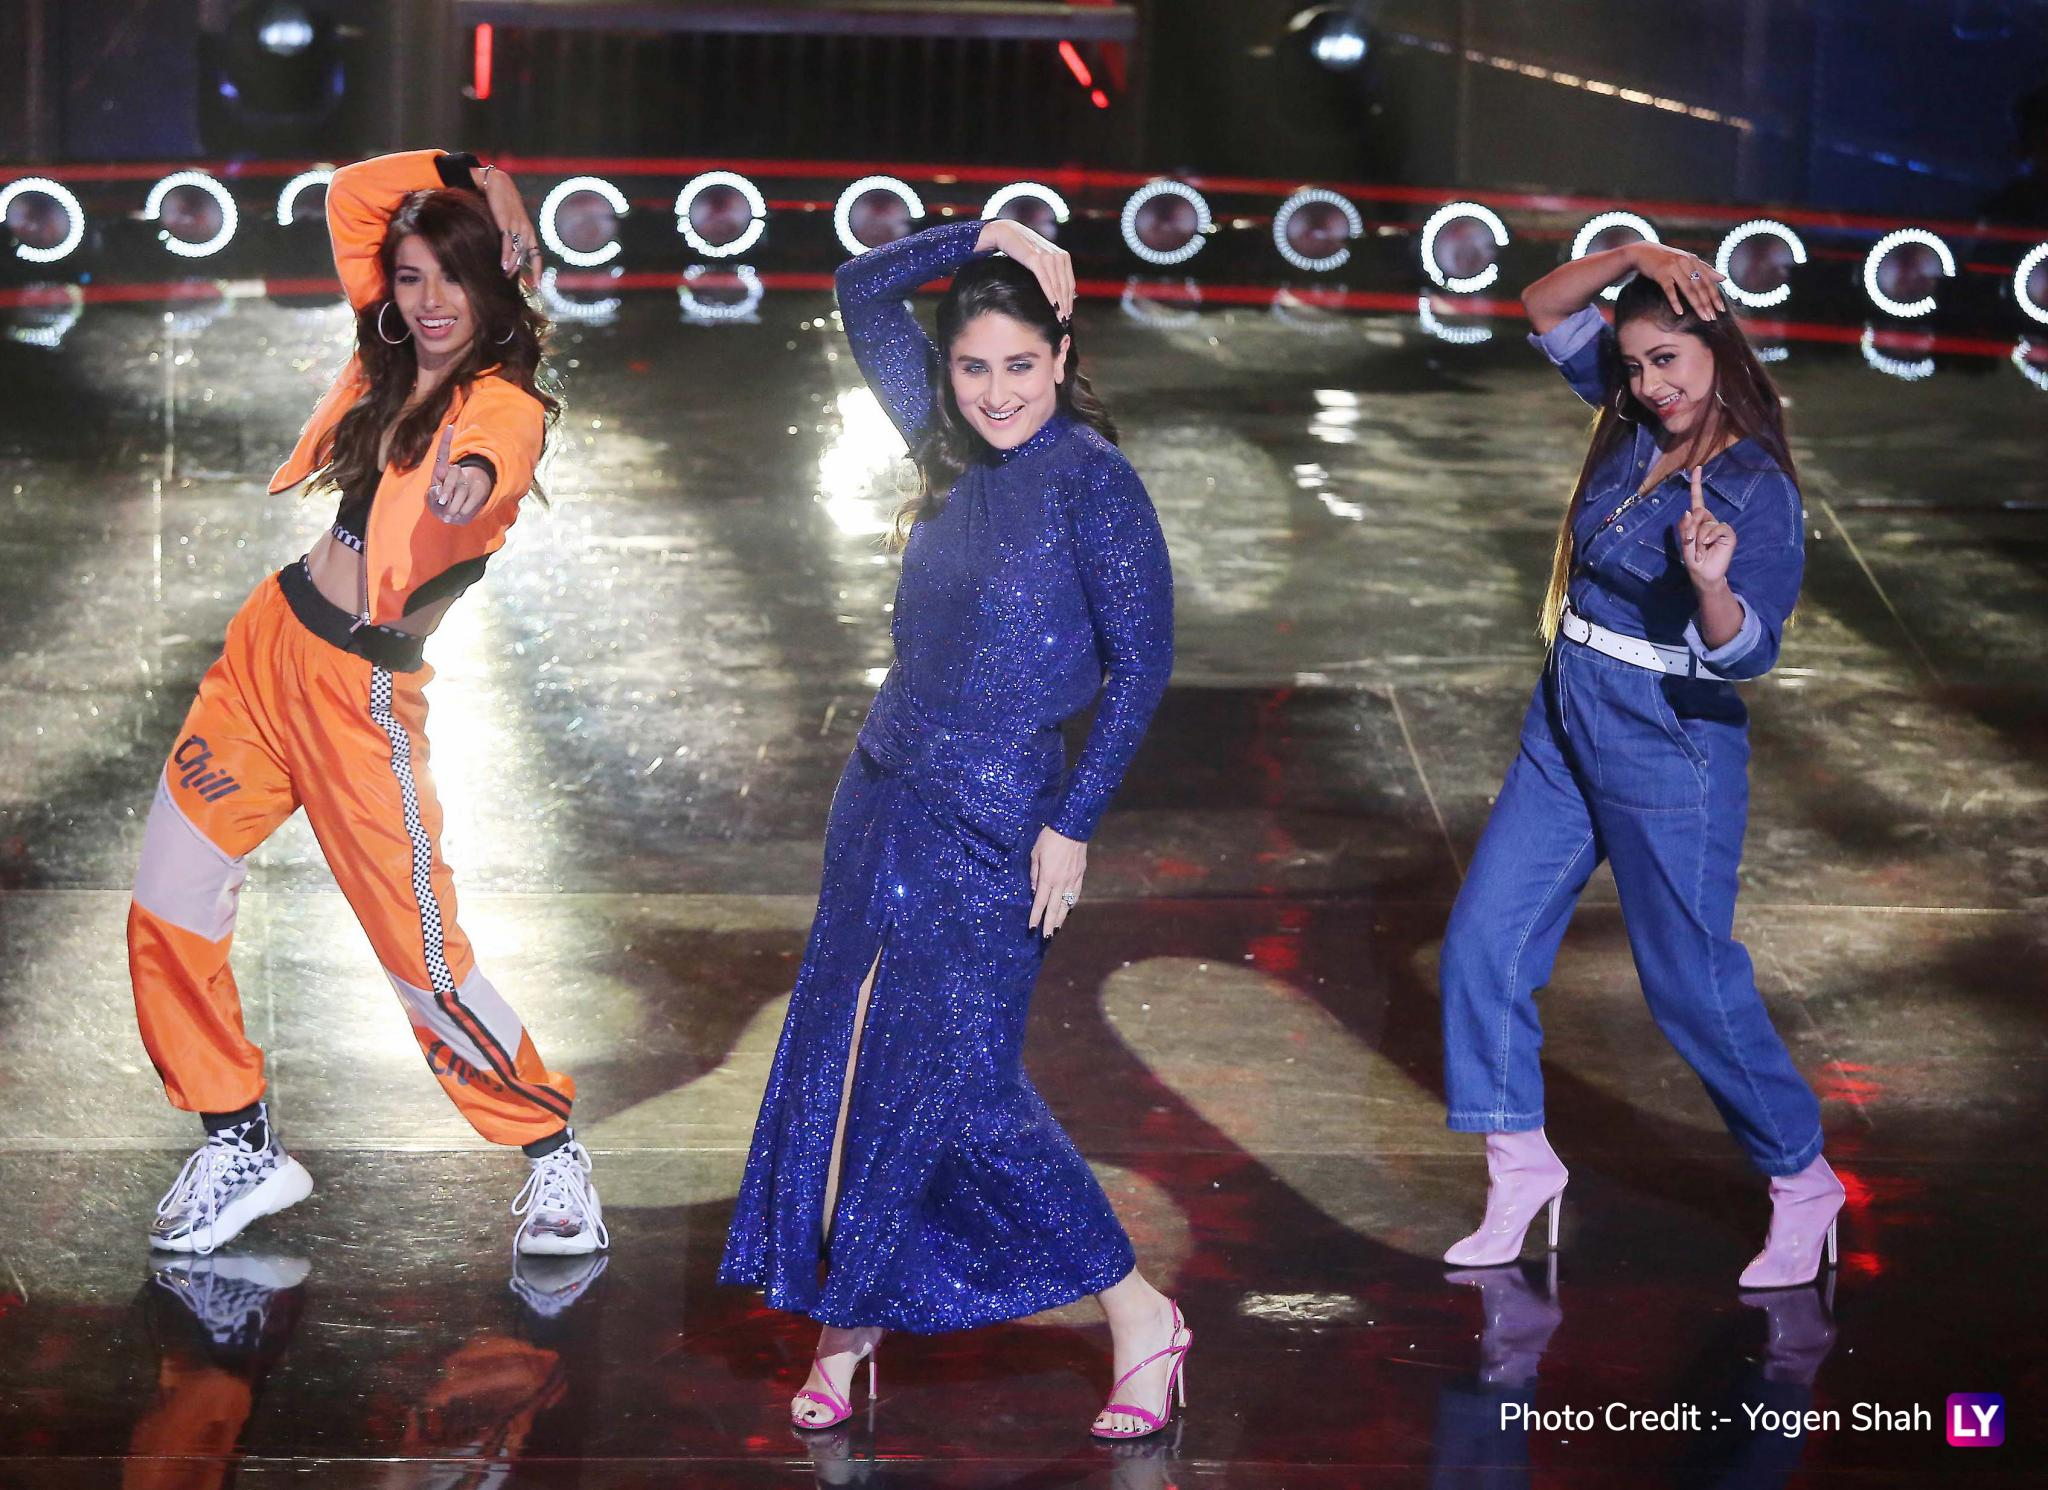 Kareena Kapoor Khan moves to her song on DID 7.